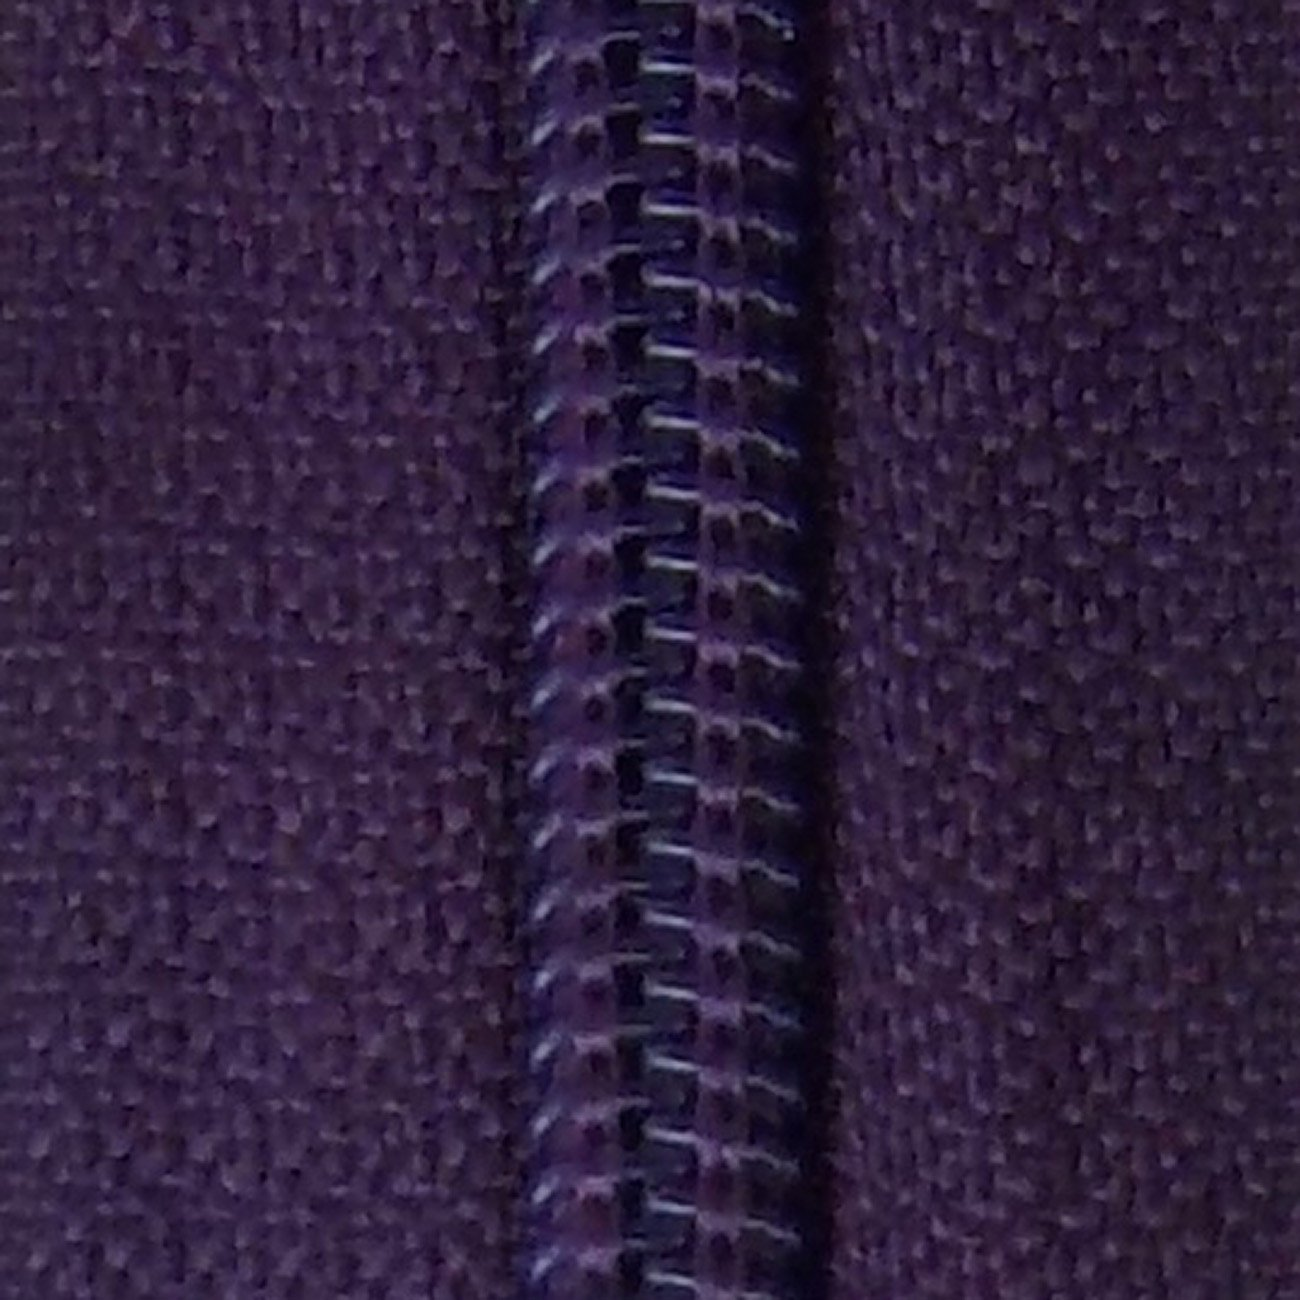 30 Double Pull Non Separating Zipper Wineberry